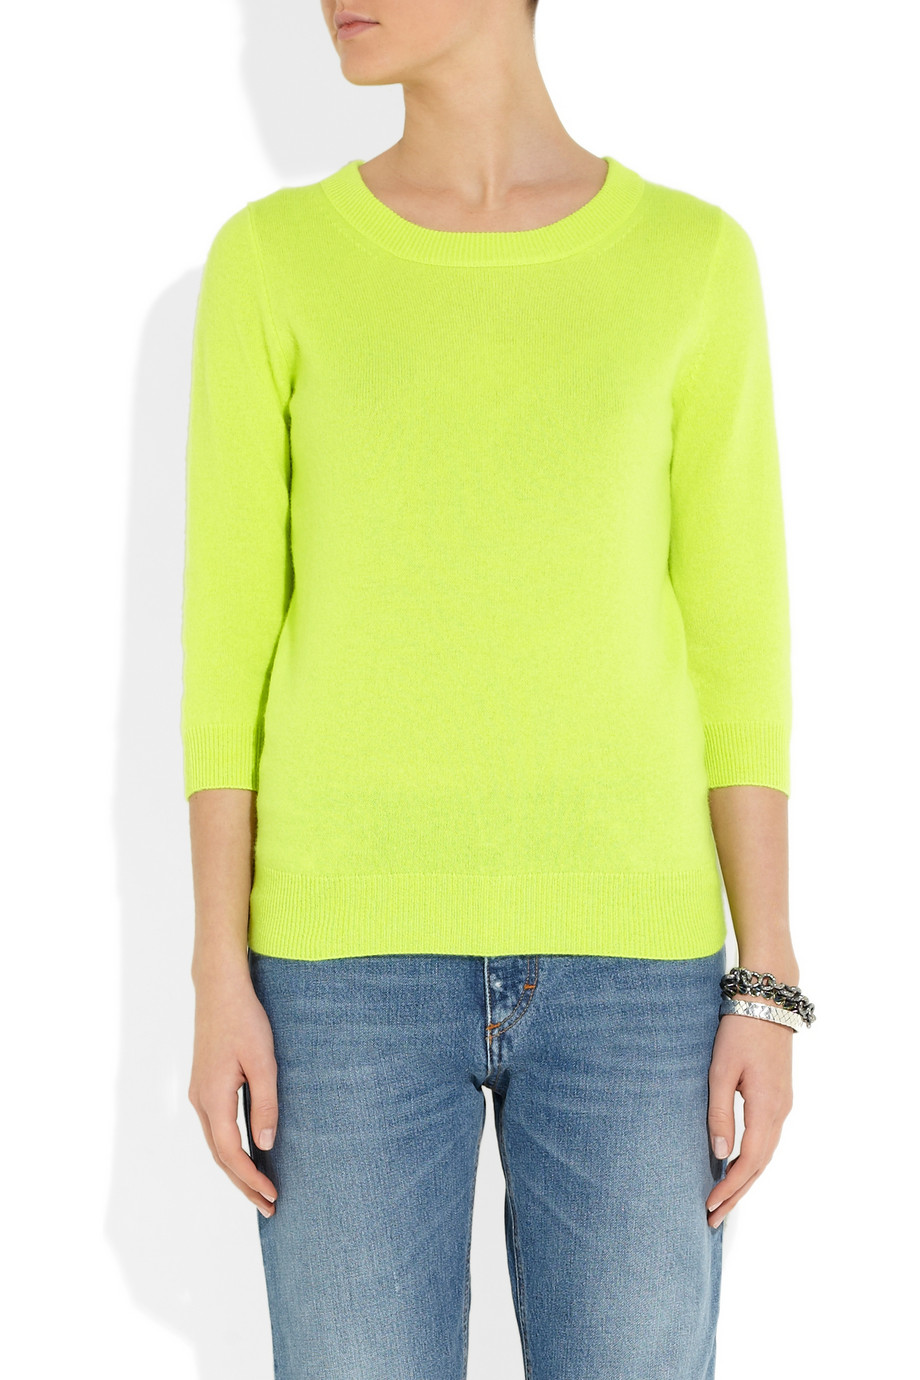 J.crew Tippi Neon Fineknit Cashmere Sweater in Green | Lyst